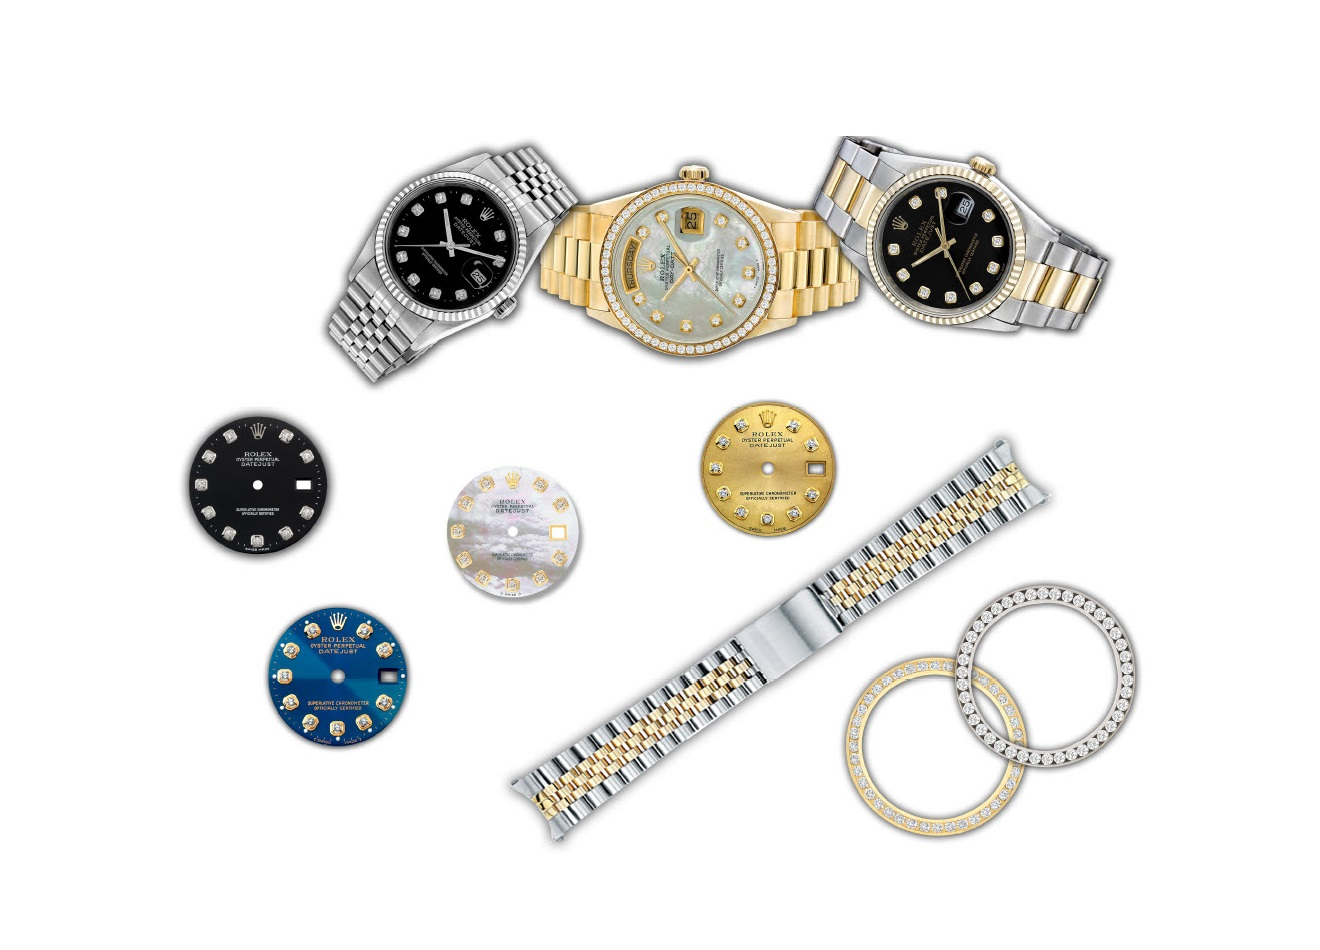 SWISS WATCH parts and accessories